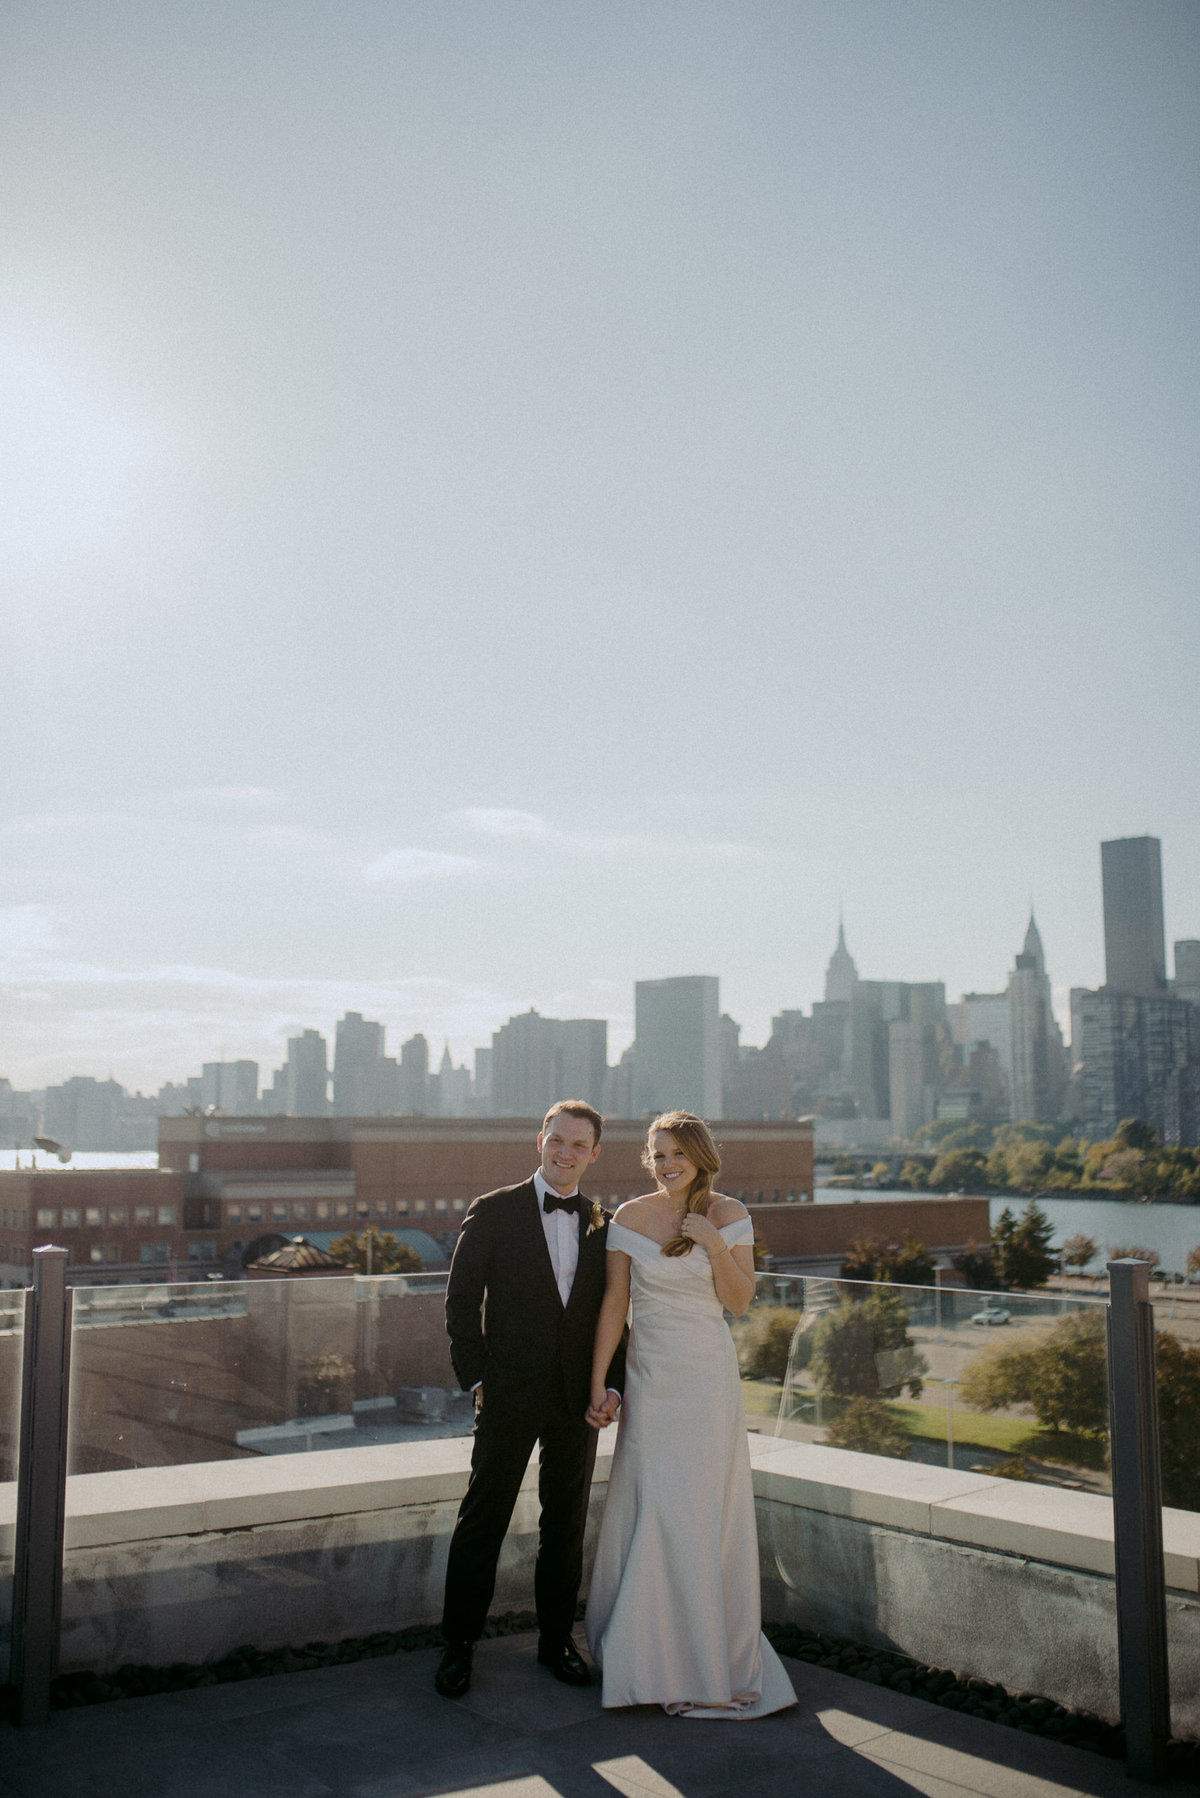 bordone-lic-brooklyn-queens-wedding-photographer-0012